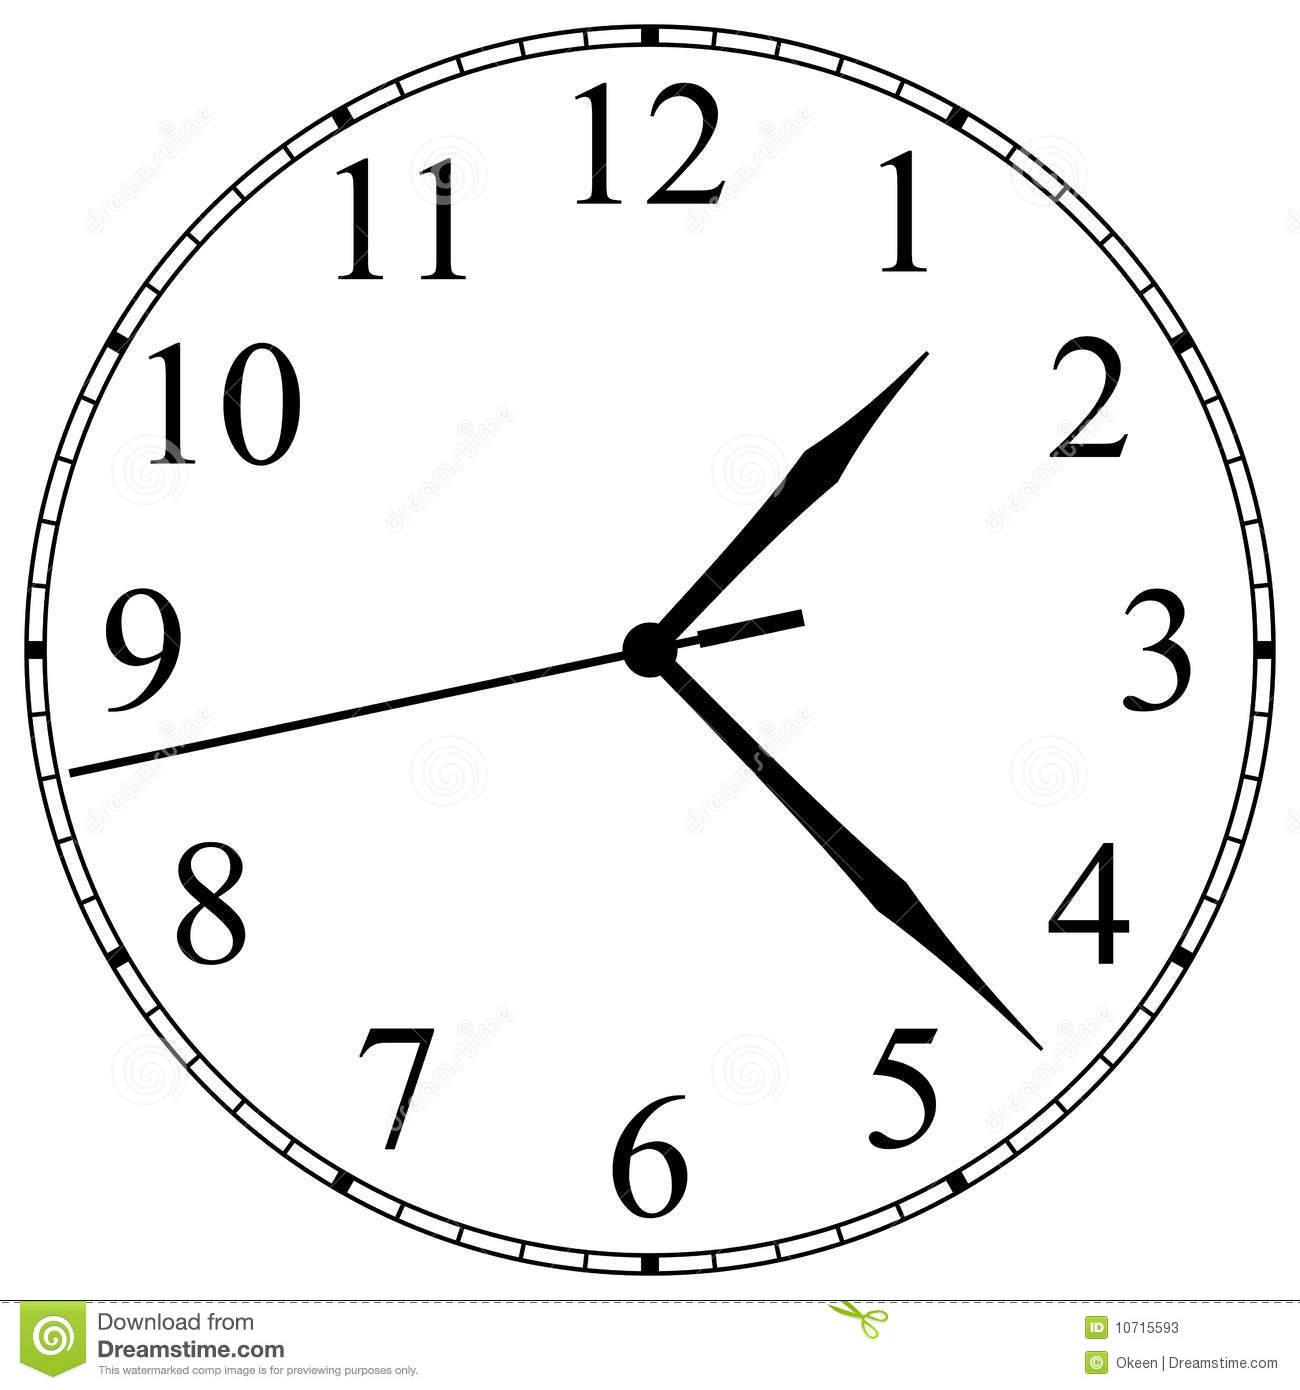 Line Drawing Clock Face : 时钟表盘